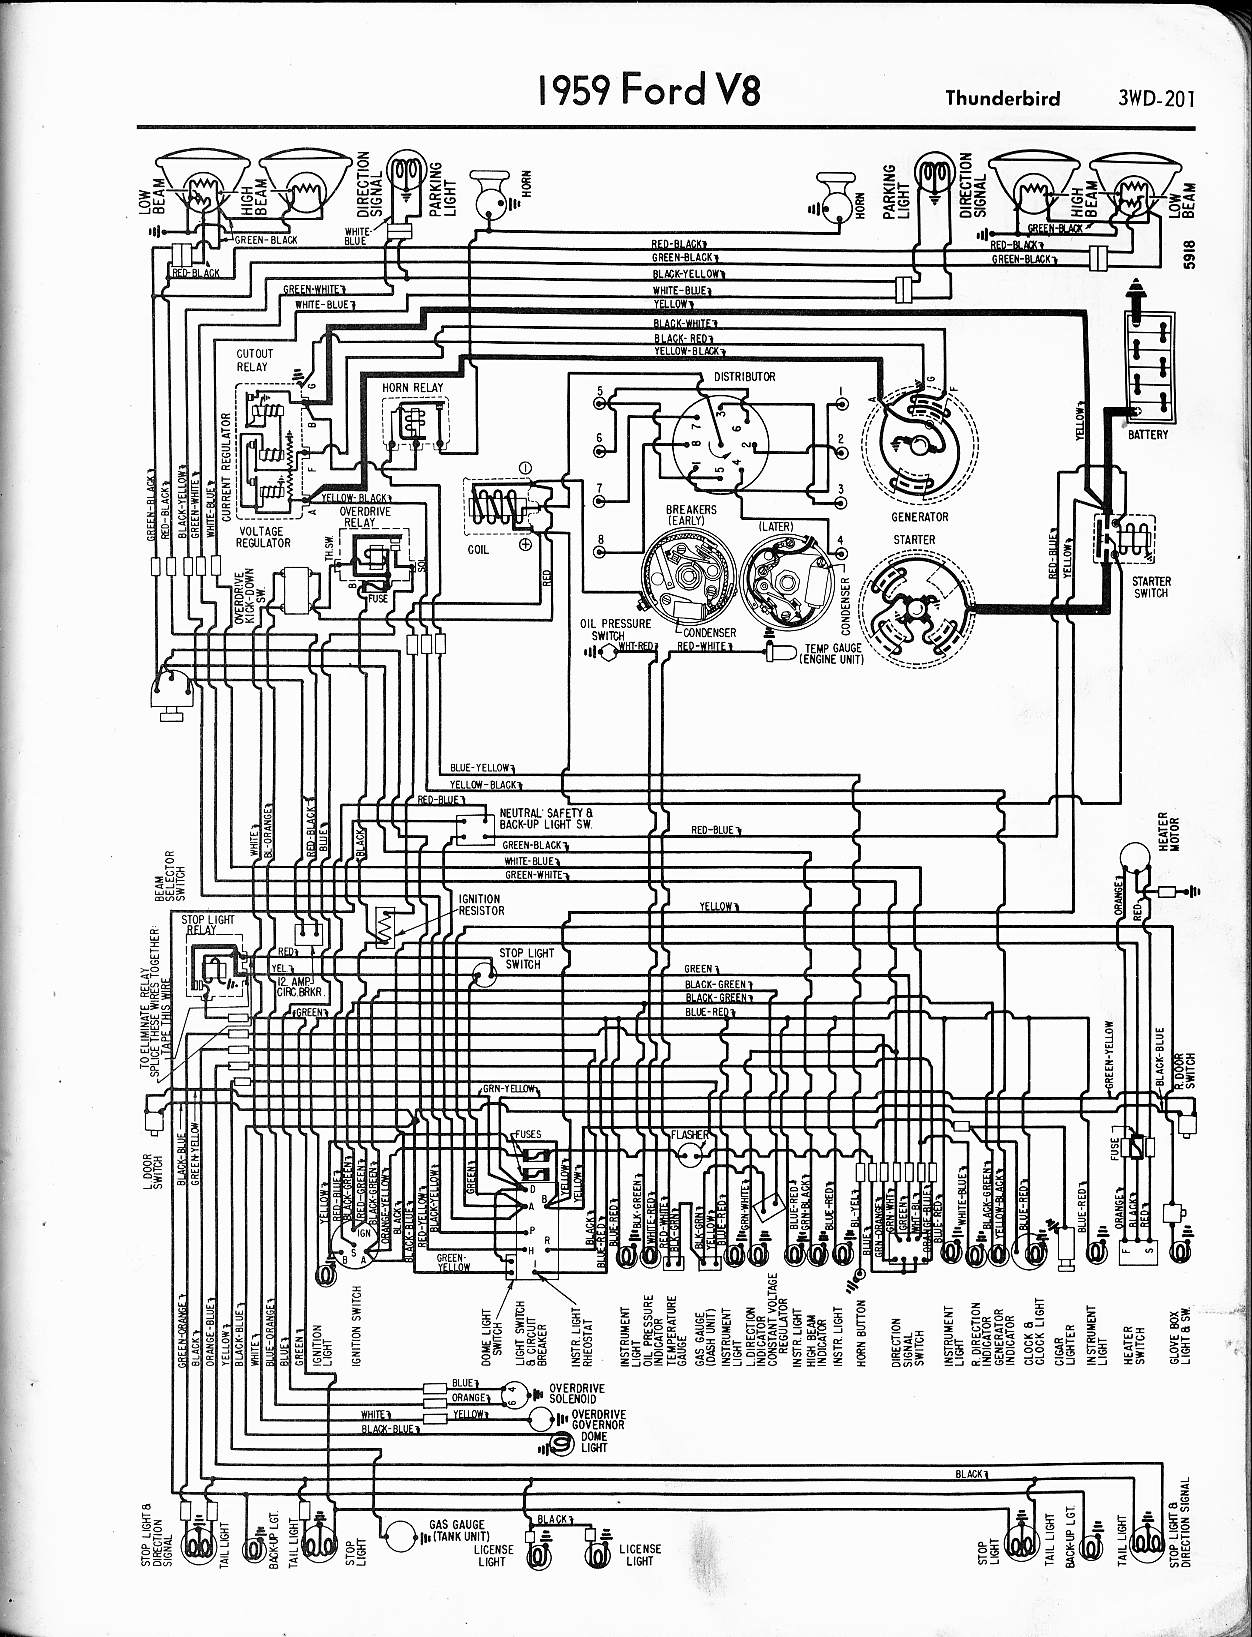 1957 Ford Signal Light Wiring Schematic Modern Design Of 1979 Corvette Harness Free Download Diagram 57 65 Diagrams Rh Oldcarmanualproject Com Chevy